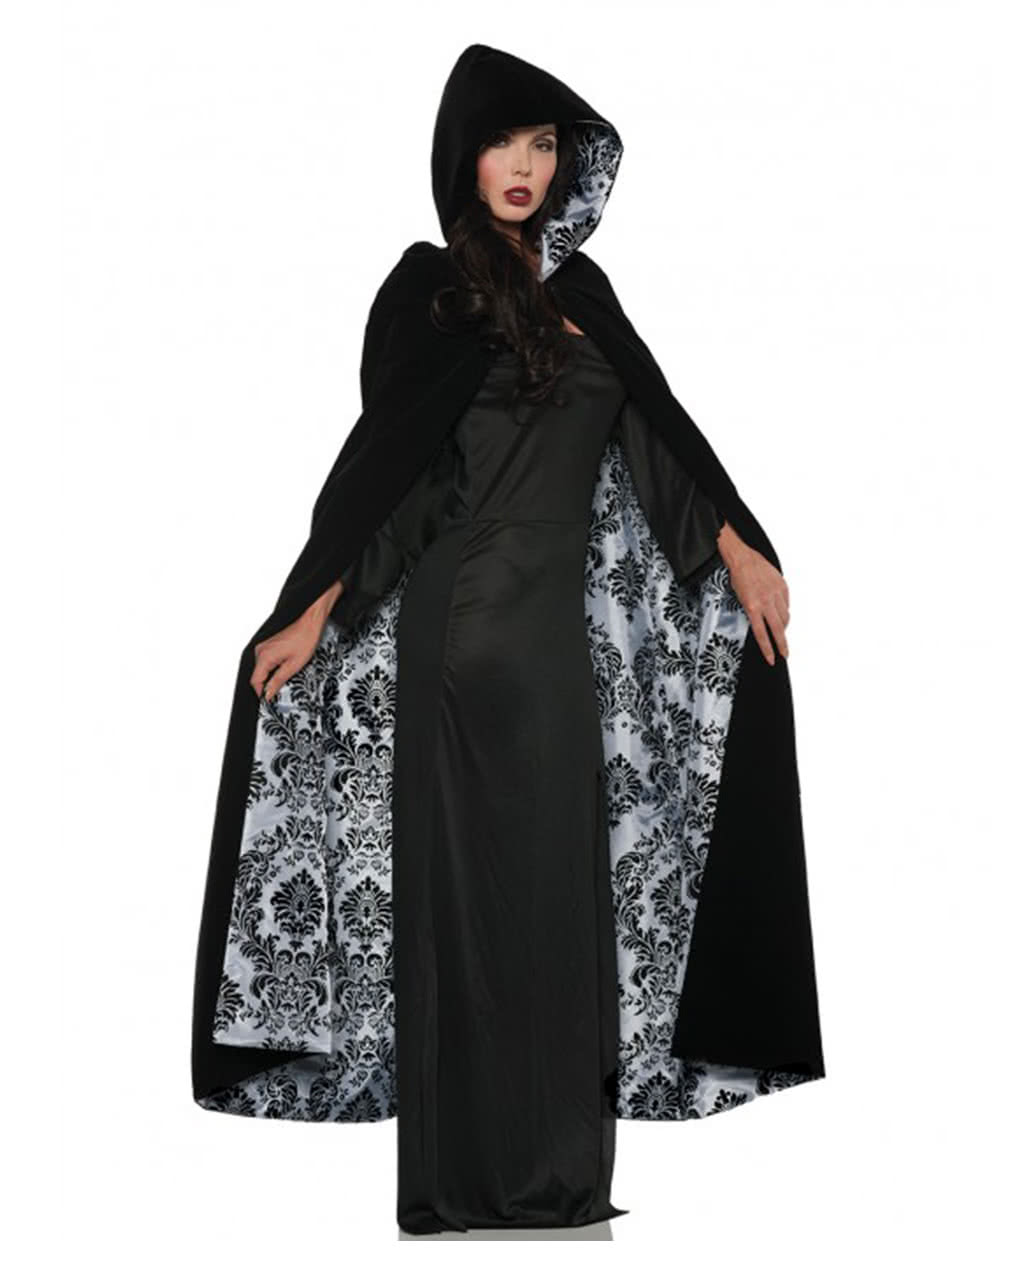 Skirt Maxi outfits plus size pictures, Dress Wedding short in front